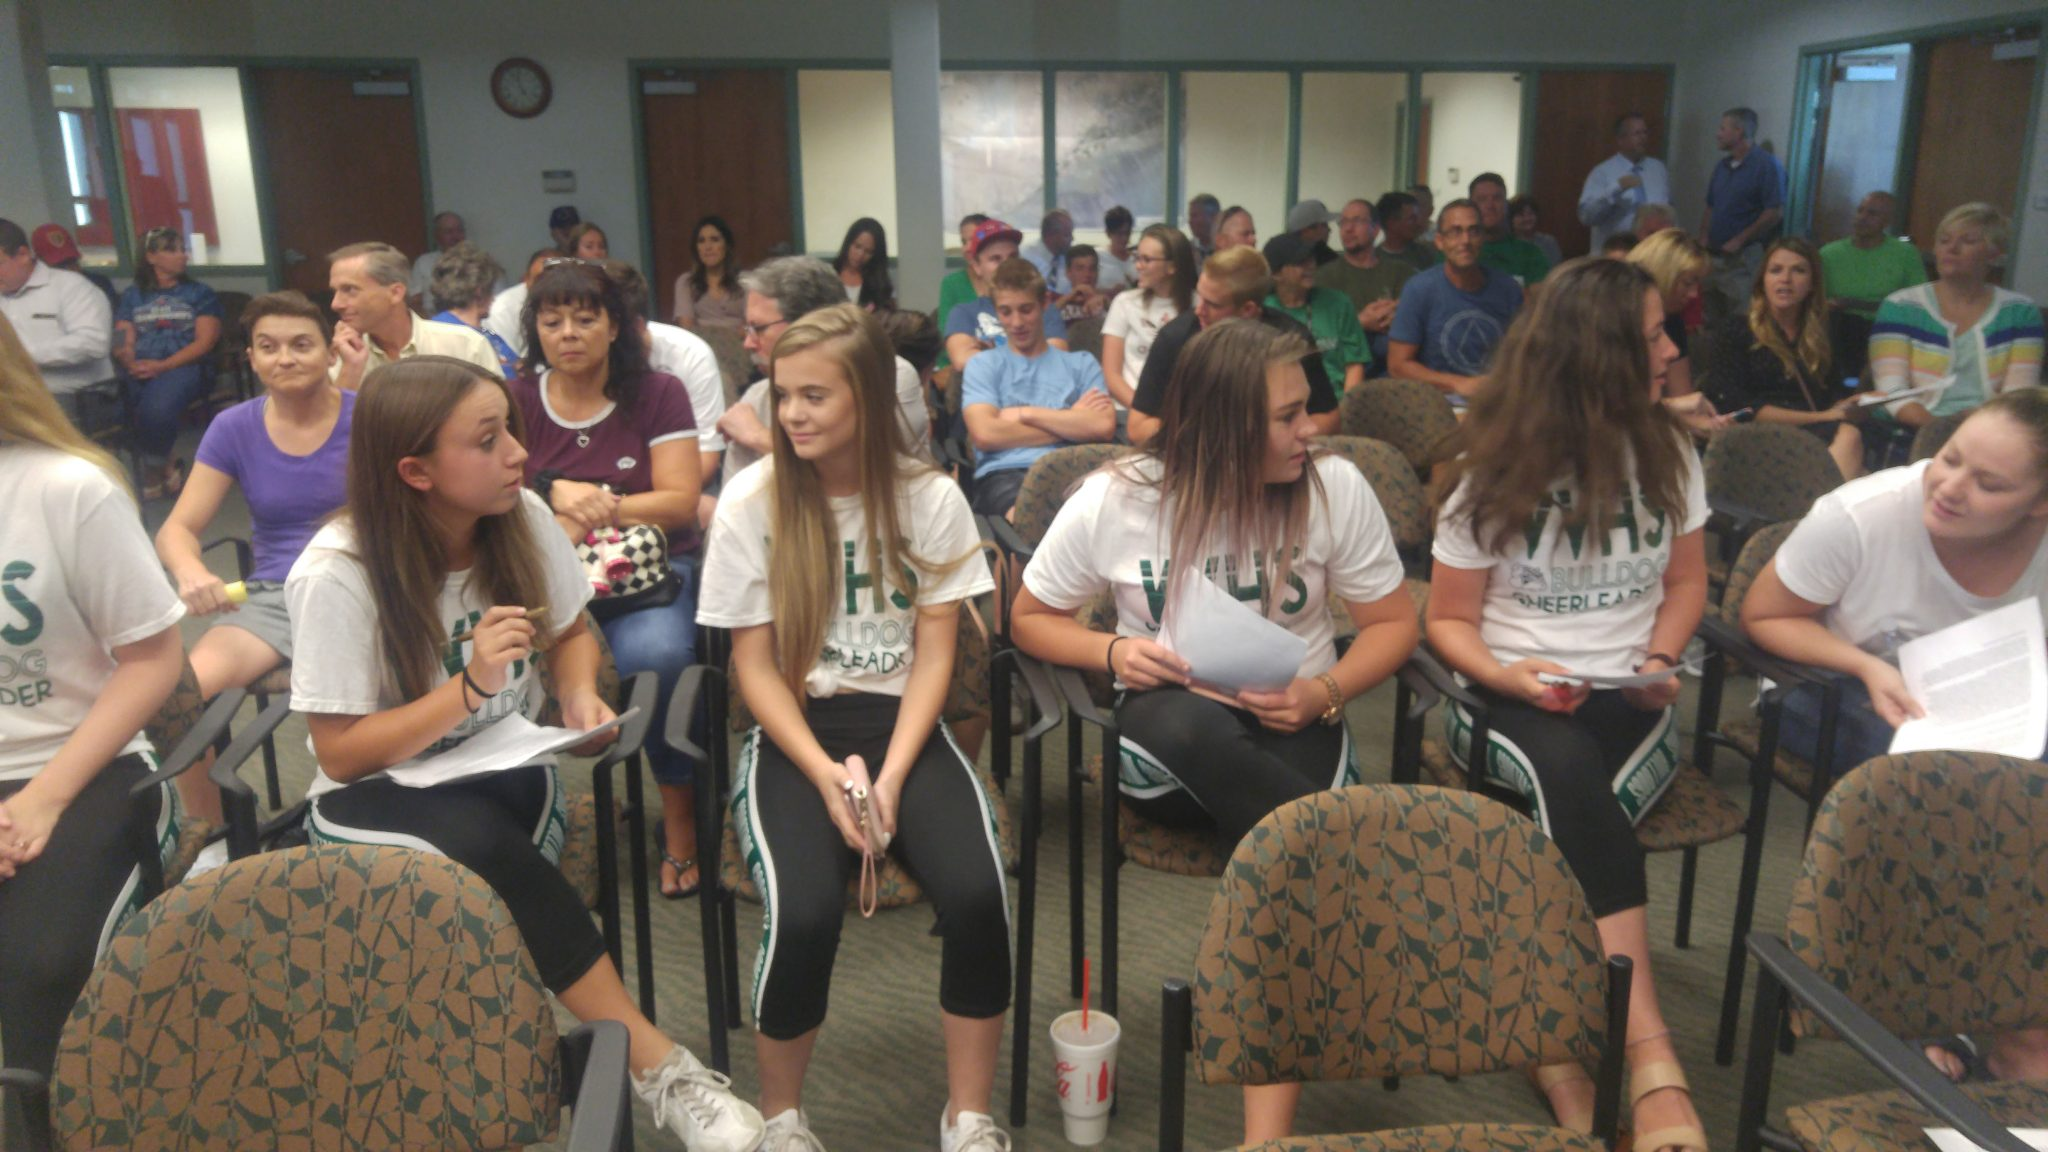 High school supporters protest city council